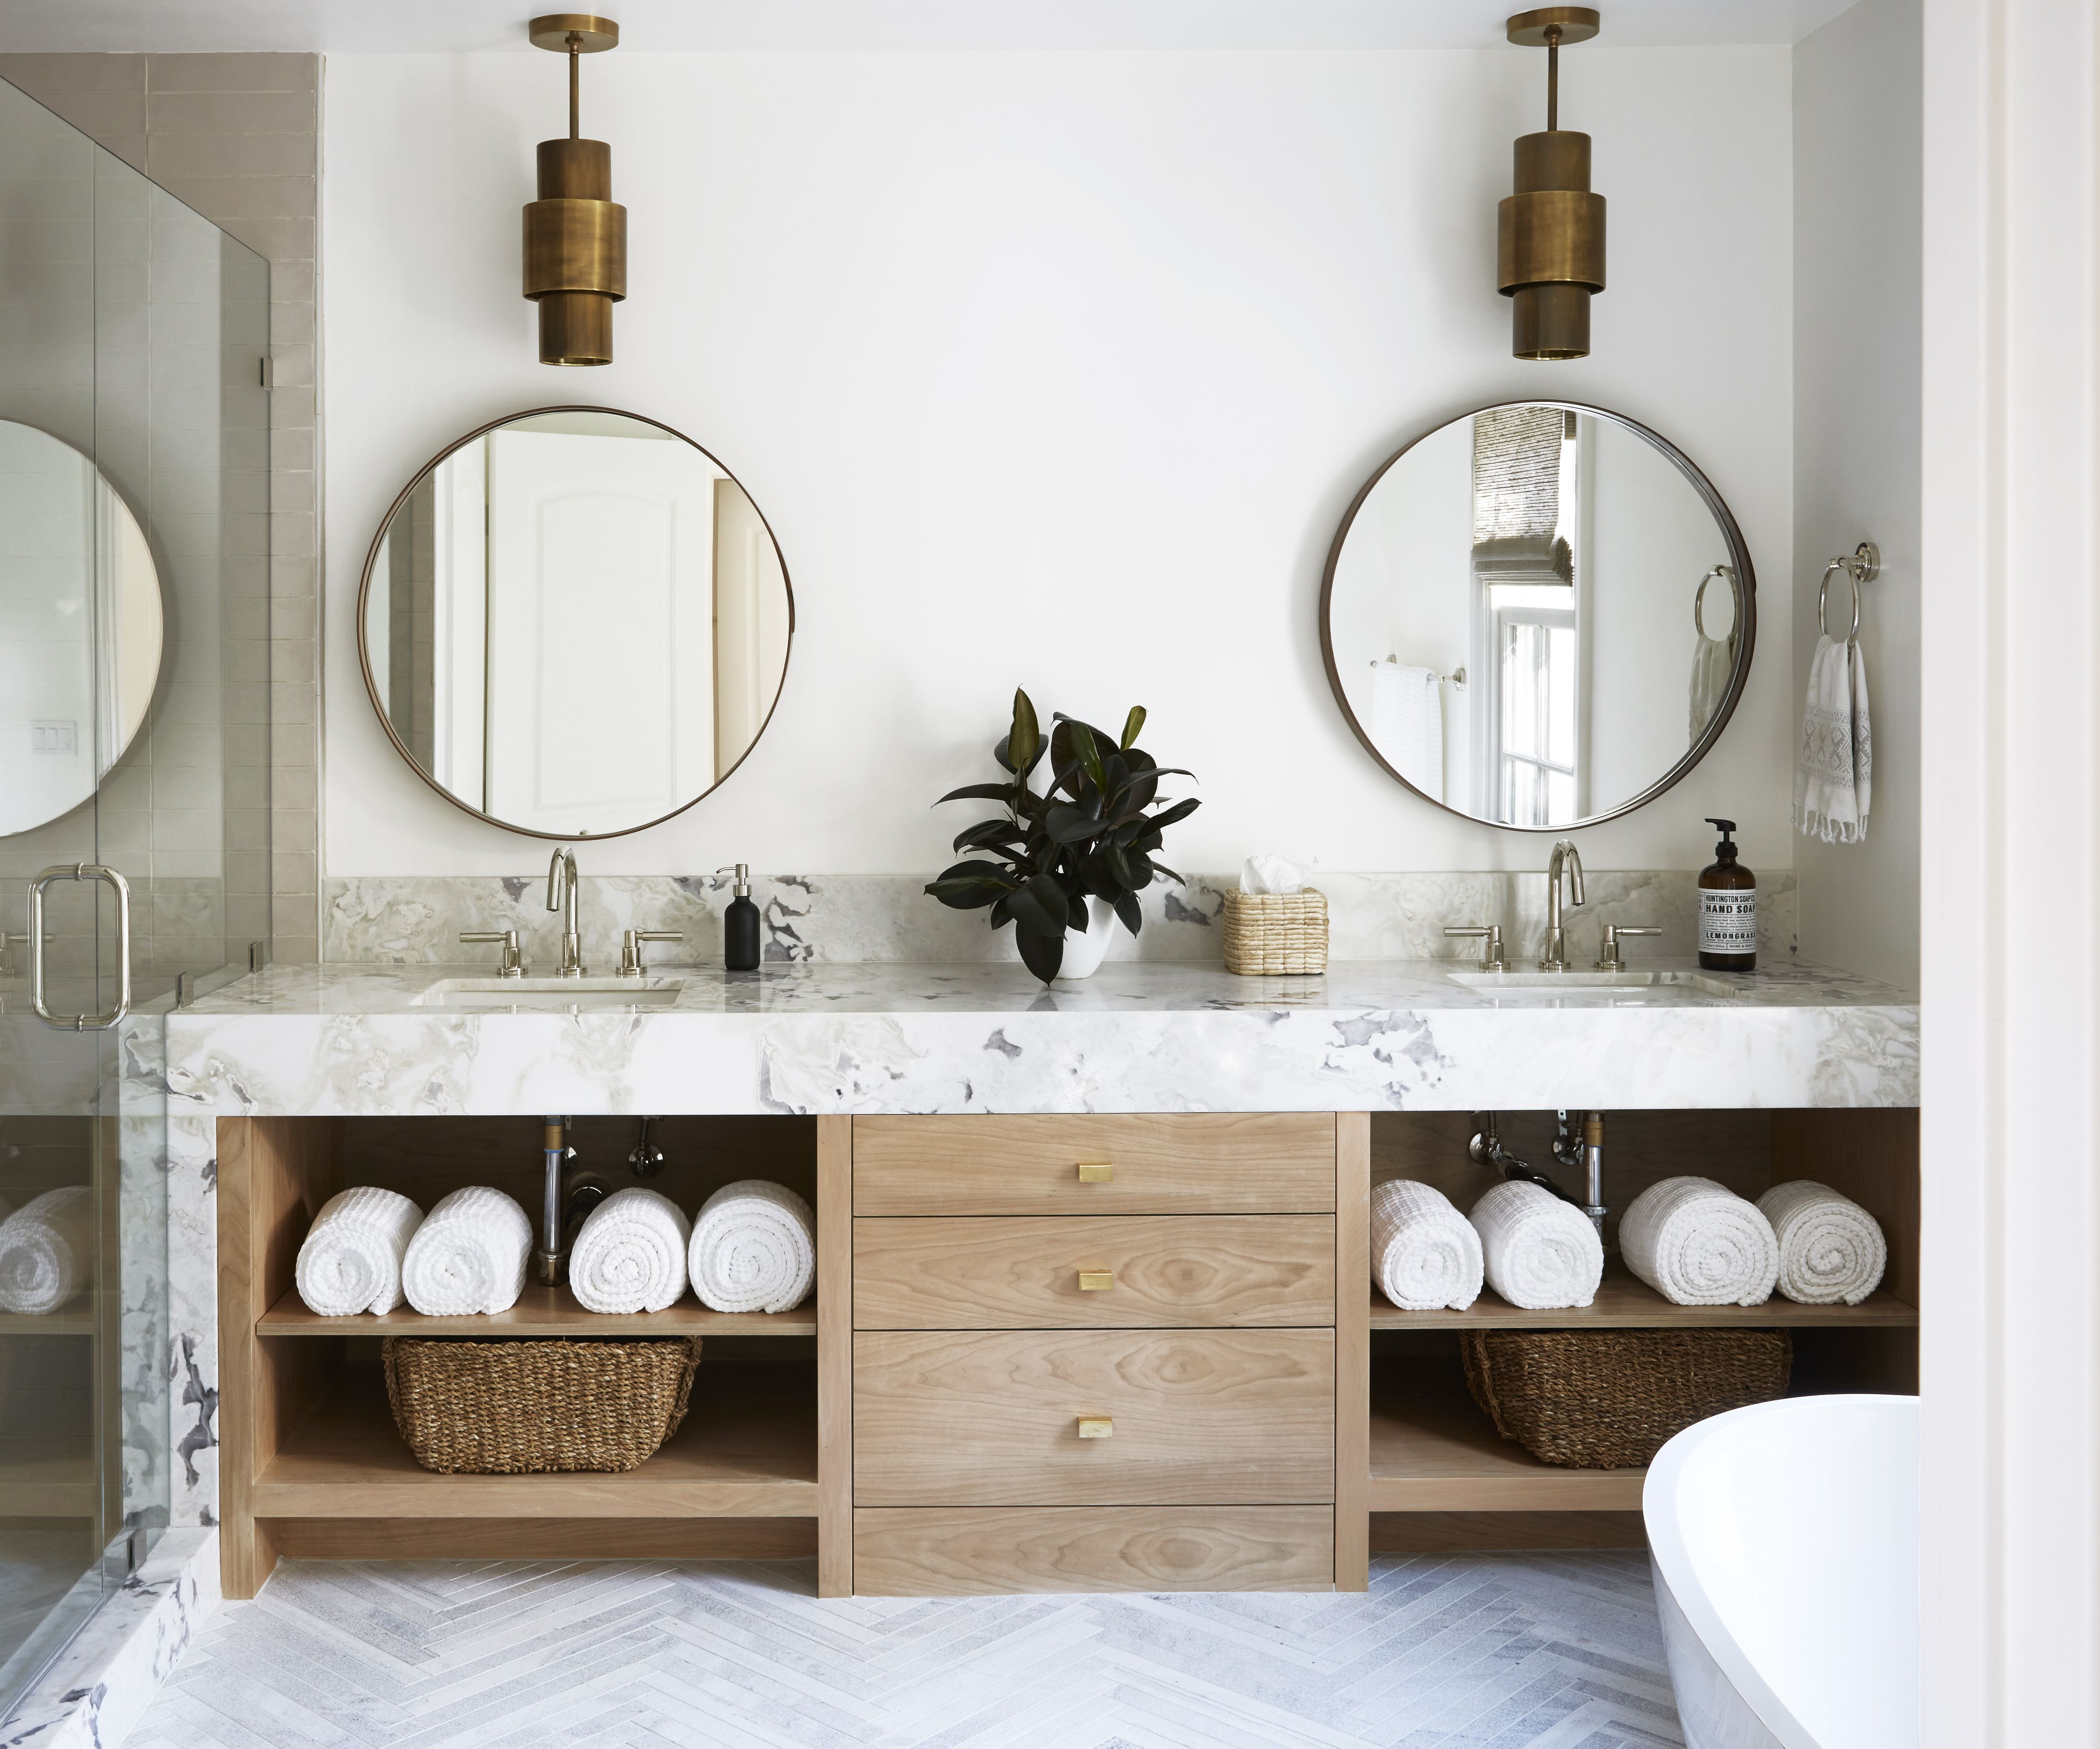 How This Designer Turned a 1940s Bathroom Into a Calming Retreat